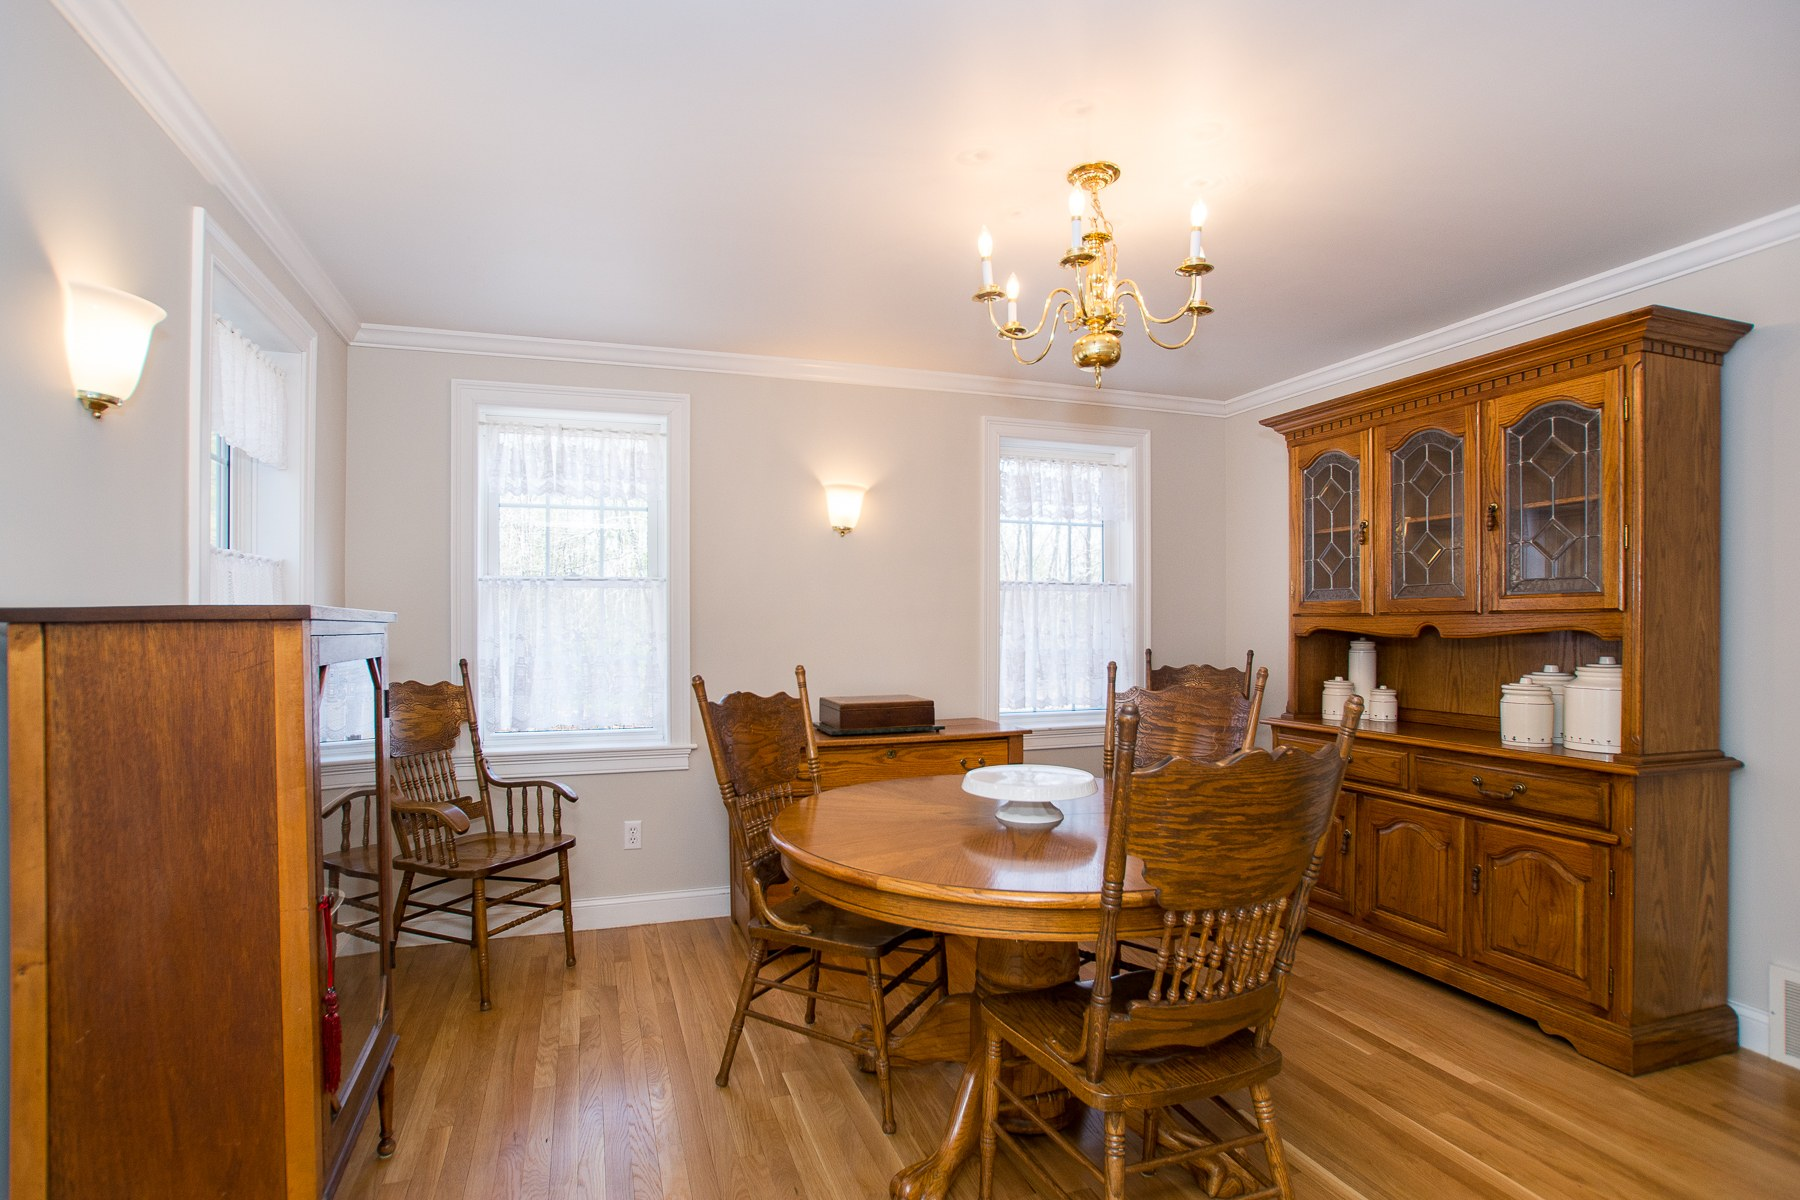 Single Family Homes for Active at 1213 Plymouth St., Bridgewater, MA 1213 Plymouth St. Bridgewater, Massachusetts 02324 United States